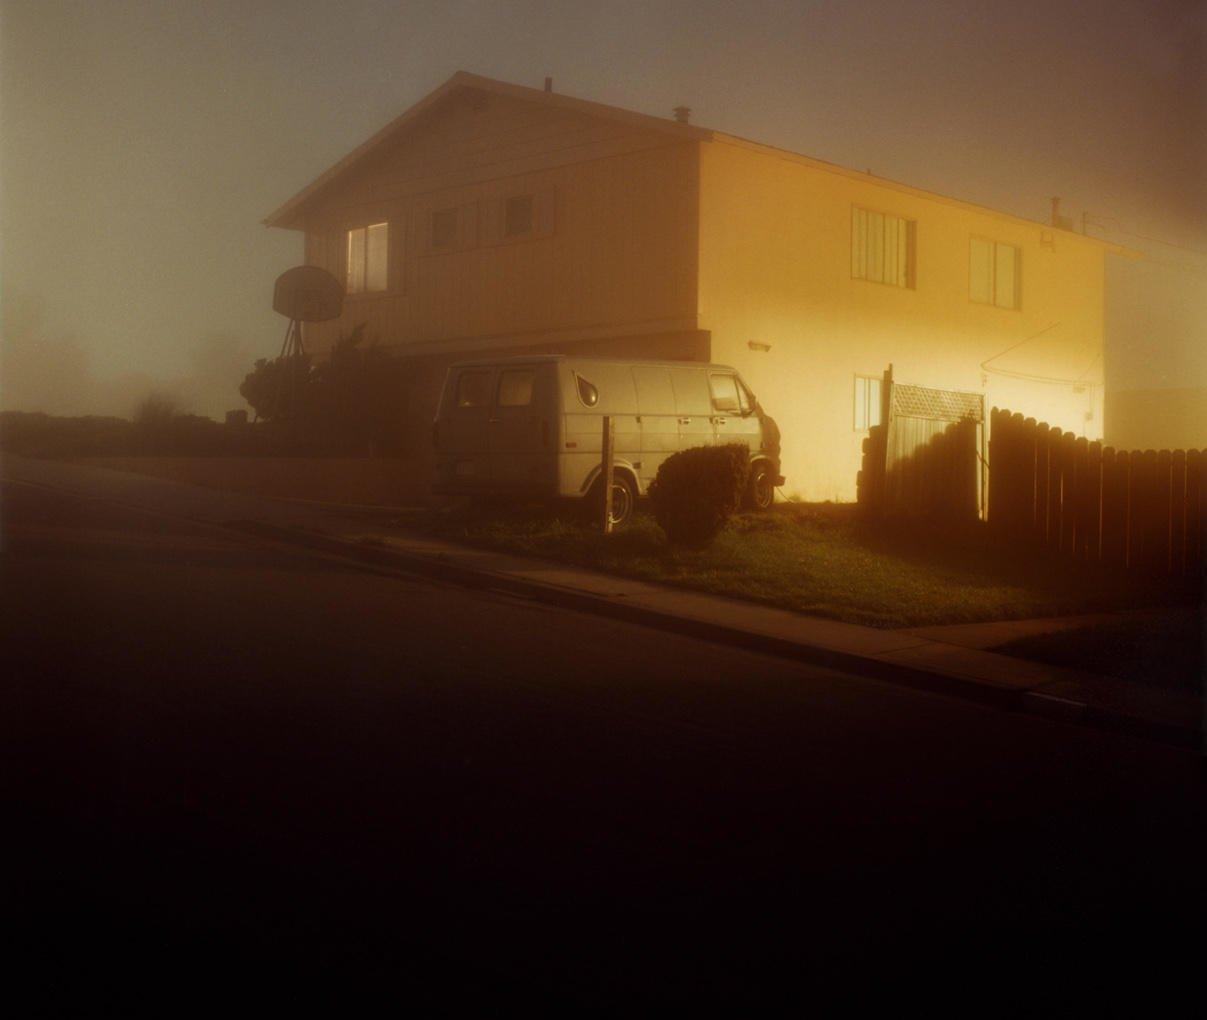 Photo 3 of 6 in A Visit With Todd Hido